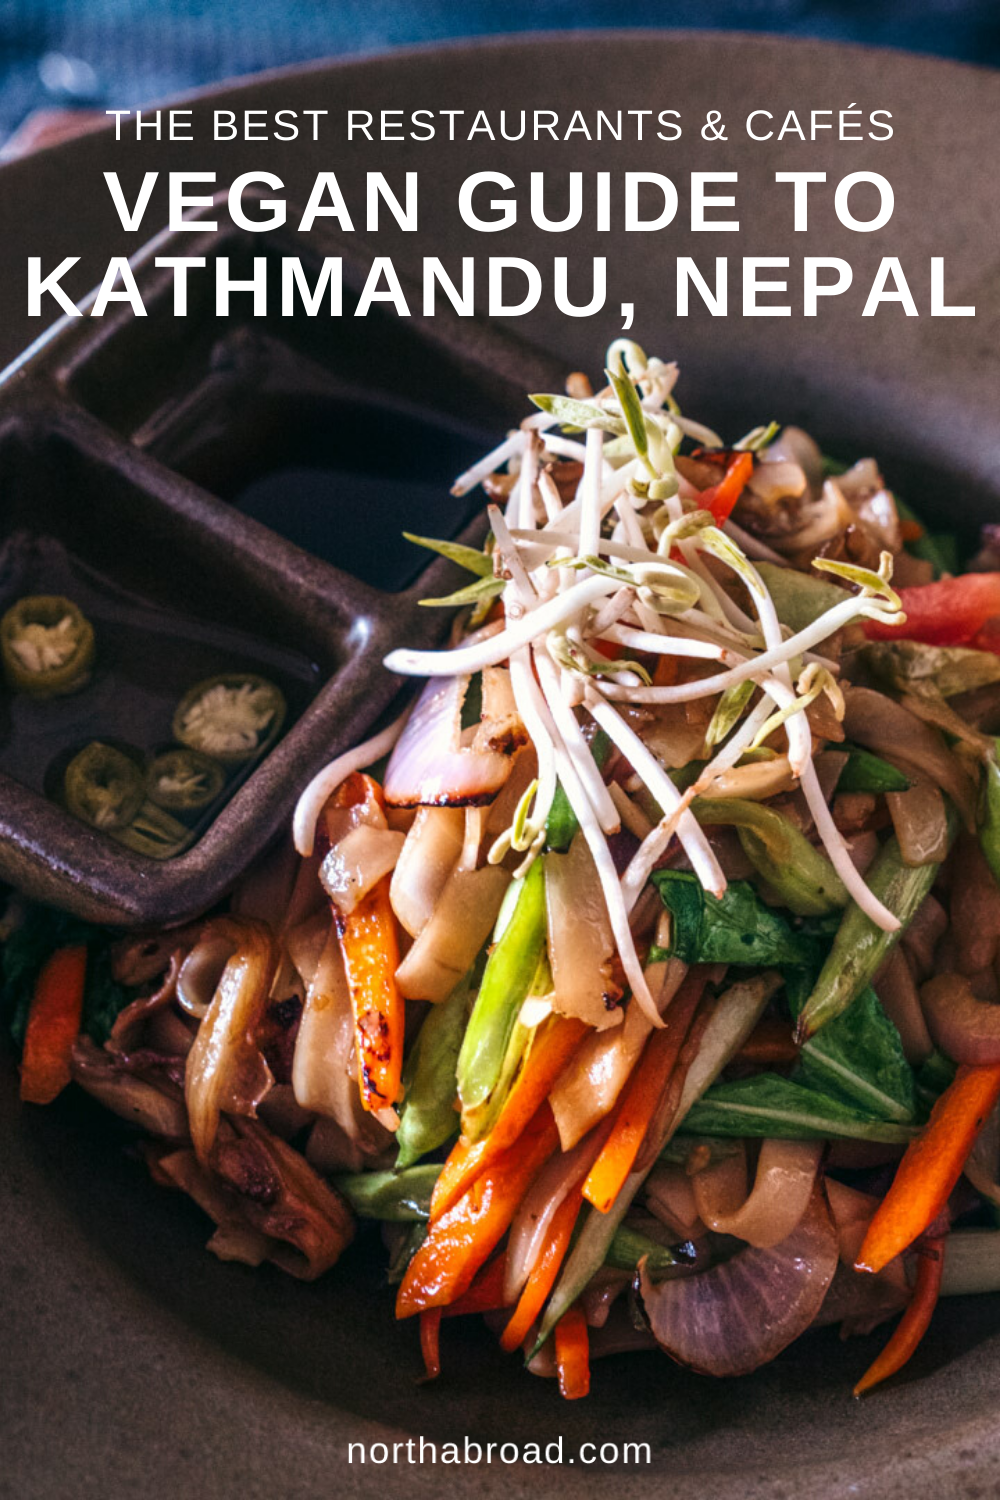 Everything you need to know about finding the most delicious vegan and vegetarian places in Kathmandu, Nepal